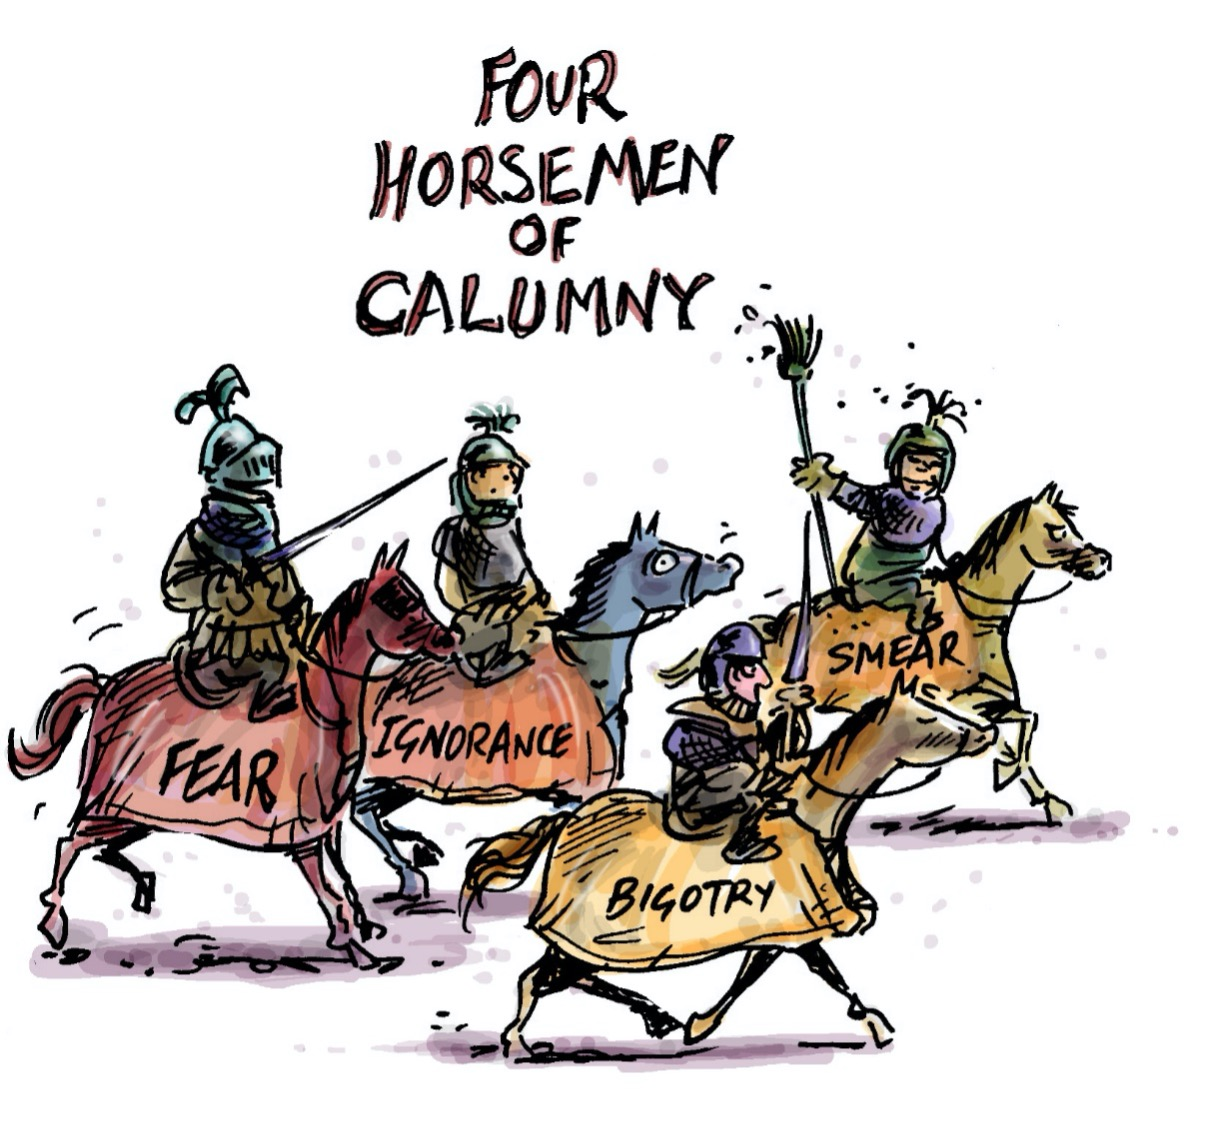 Illustration of the four horsemen of calumny: Fear, Ignorance, Bigotry, and Smear.